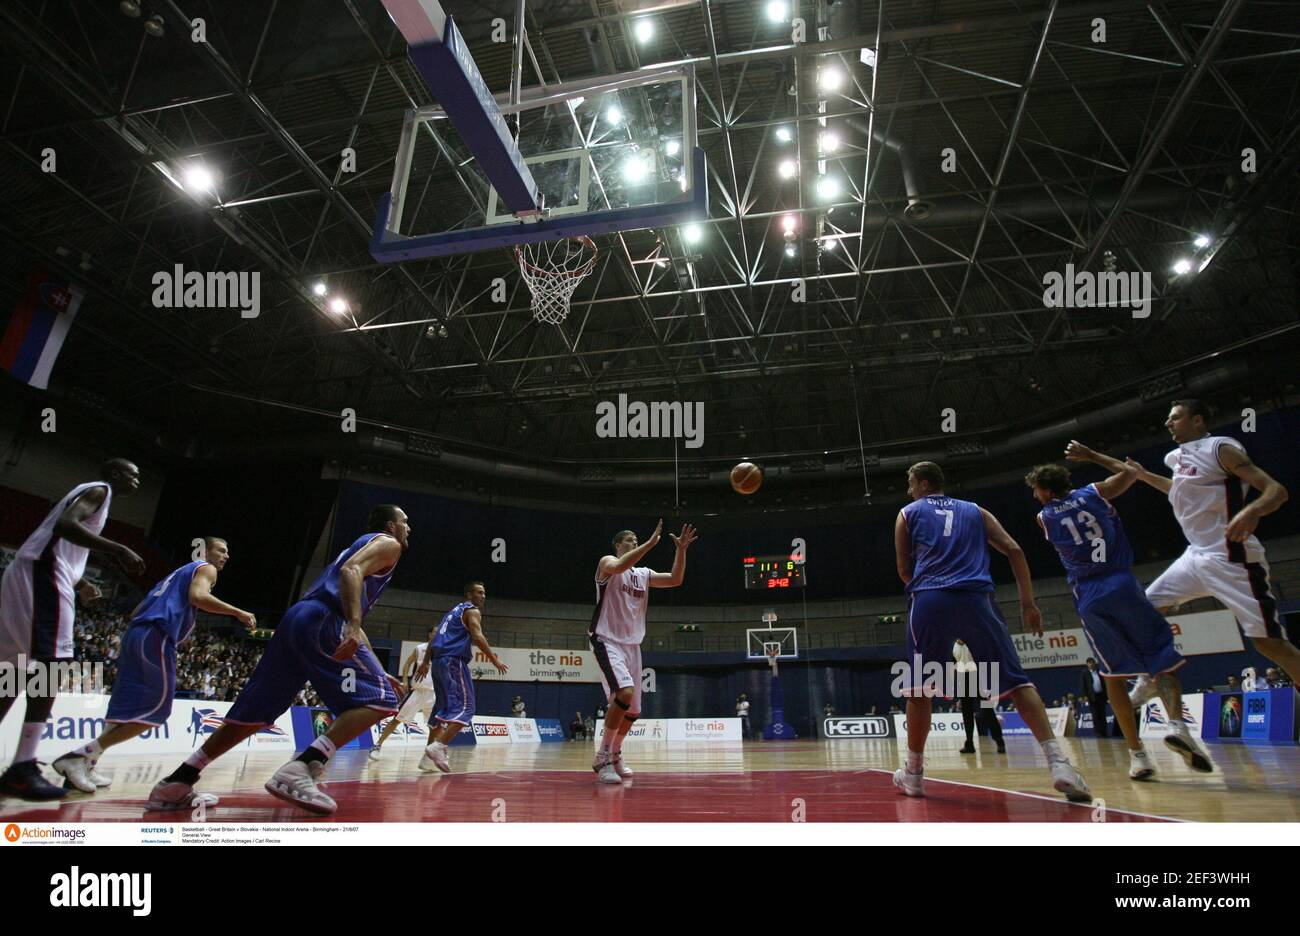 Basketball Arena Indoor High Resolution Stock Photography And Images Alamy